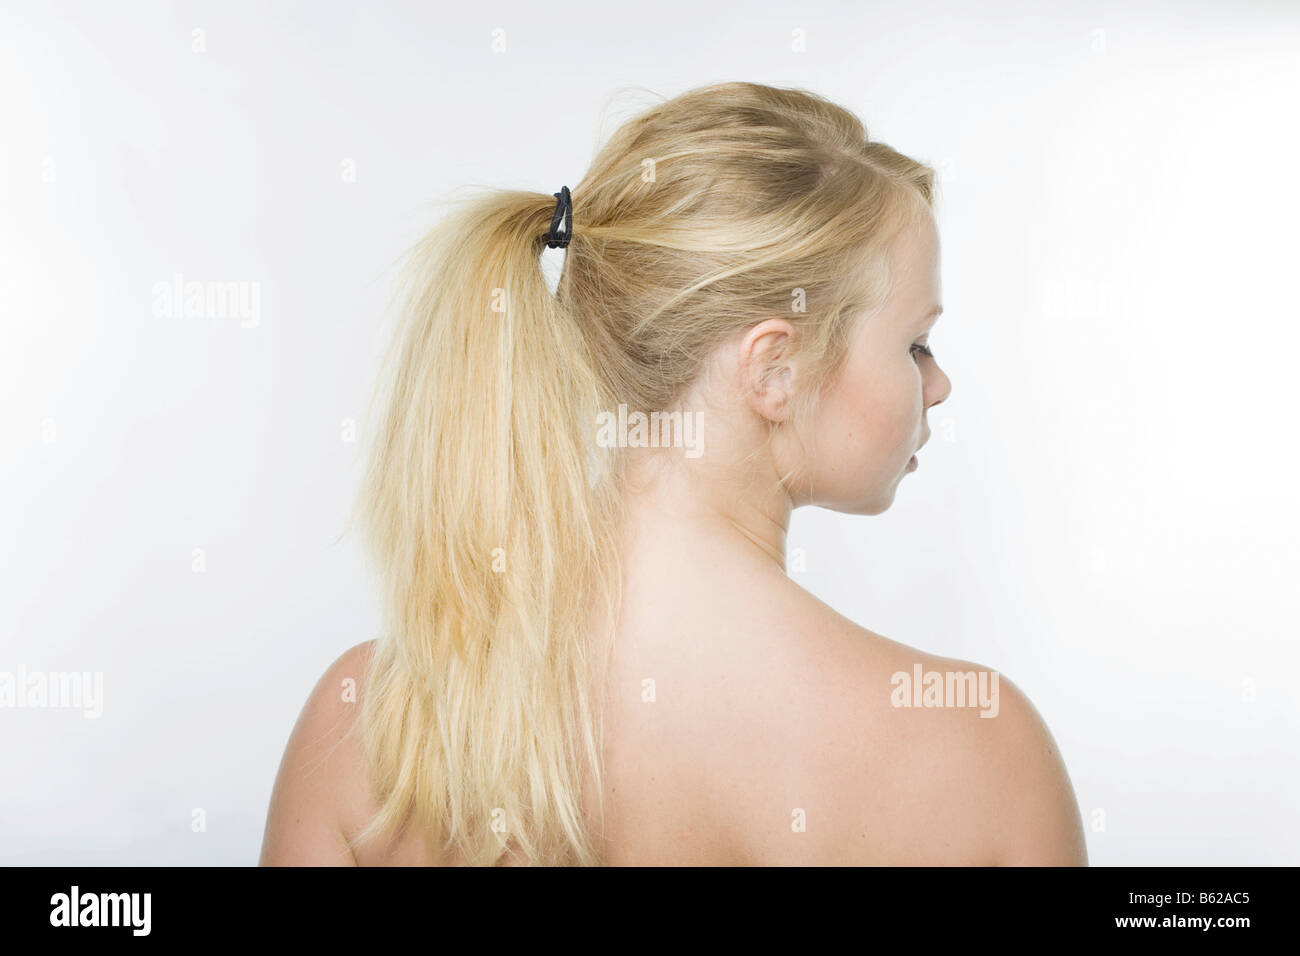 Young woman looking to the side, blonde pony-tail hanging over her shoulders - Stock Image